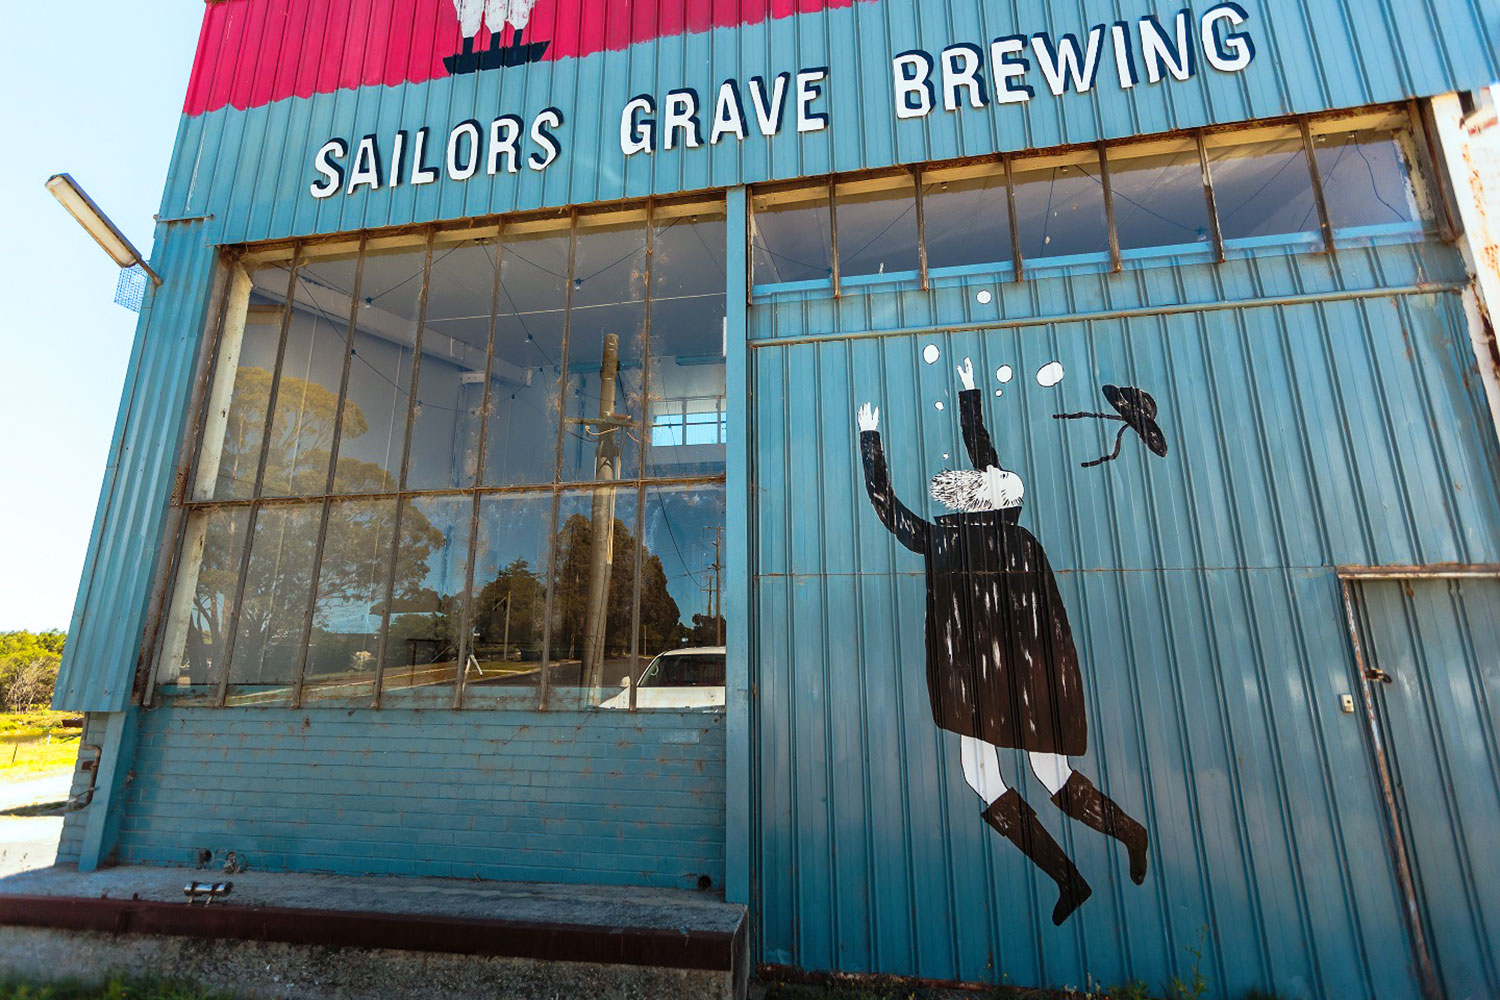 Sailors Grave Brewery, Orbost, Victoria